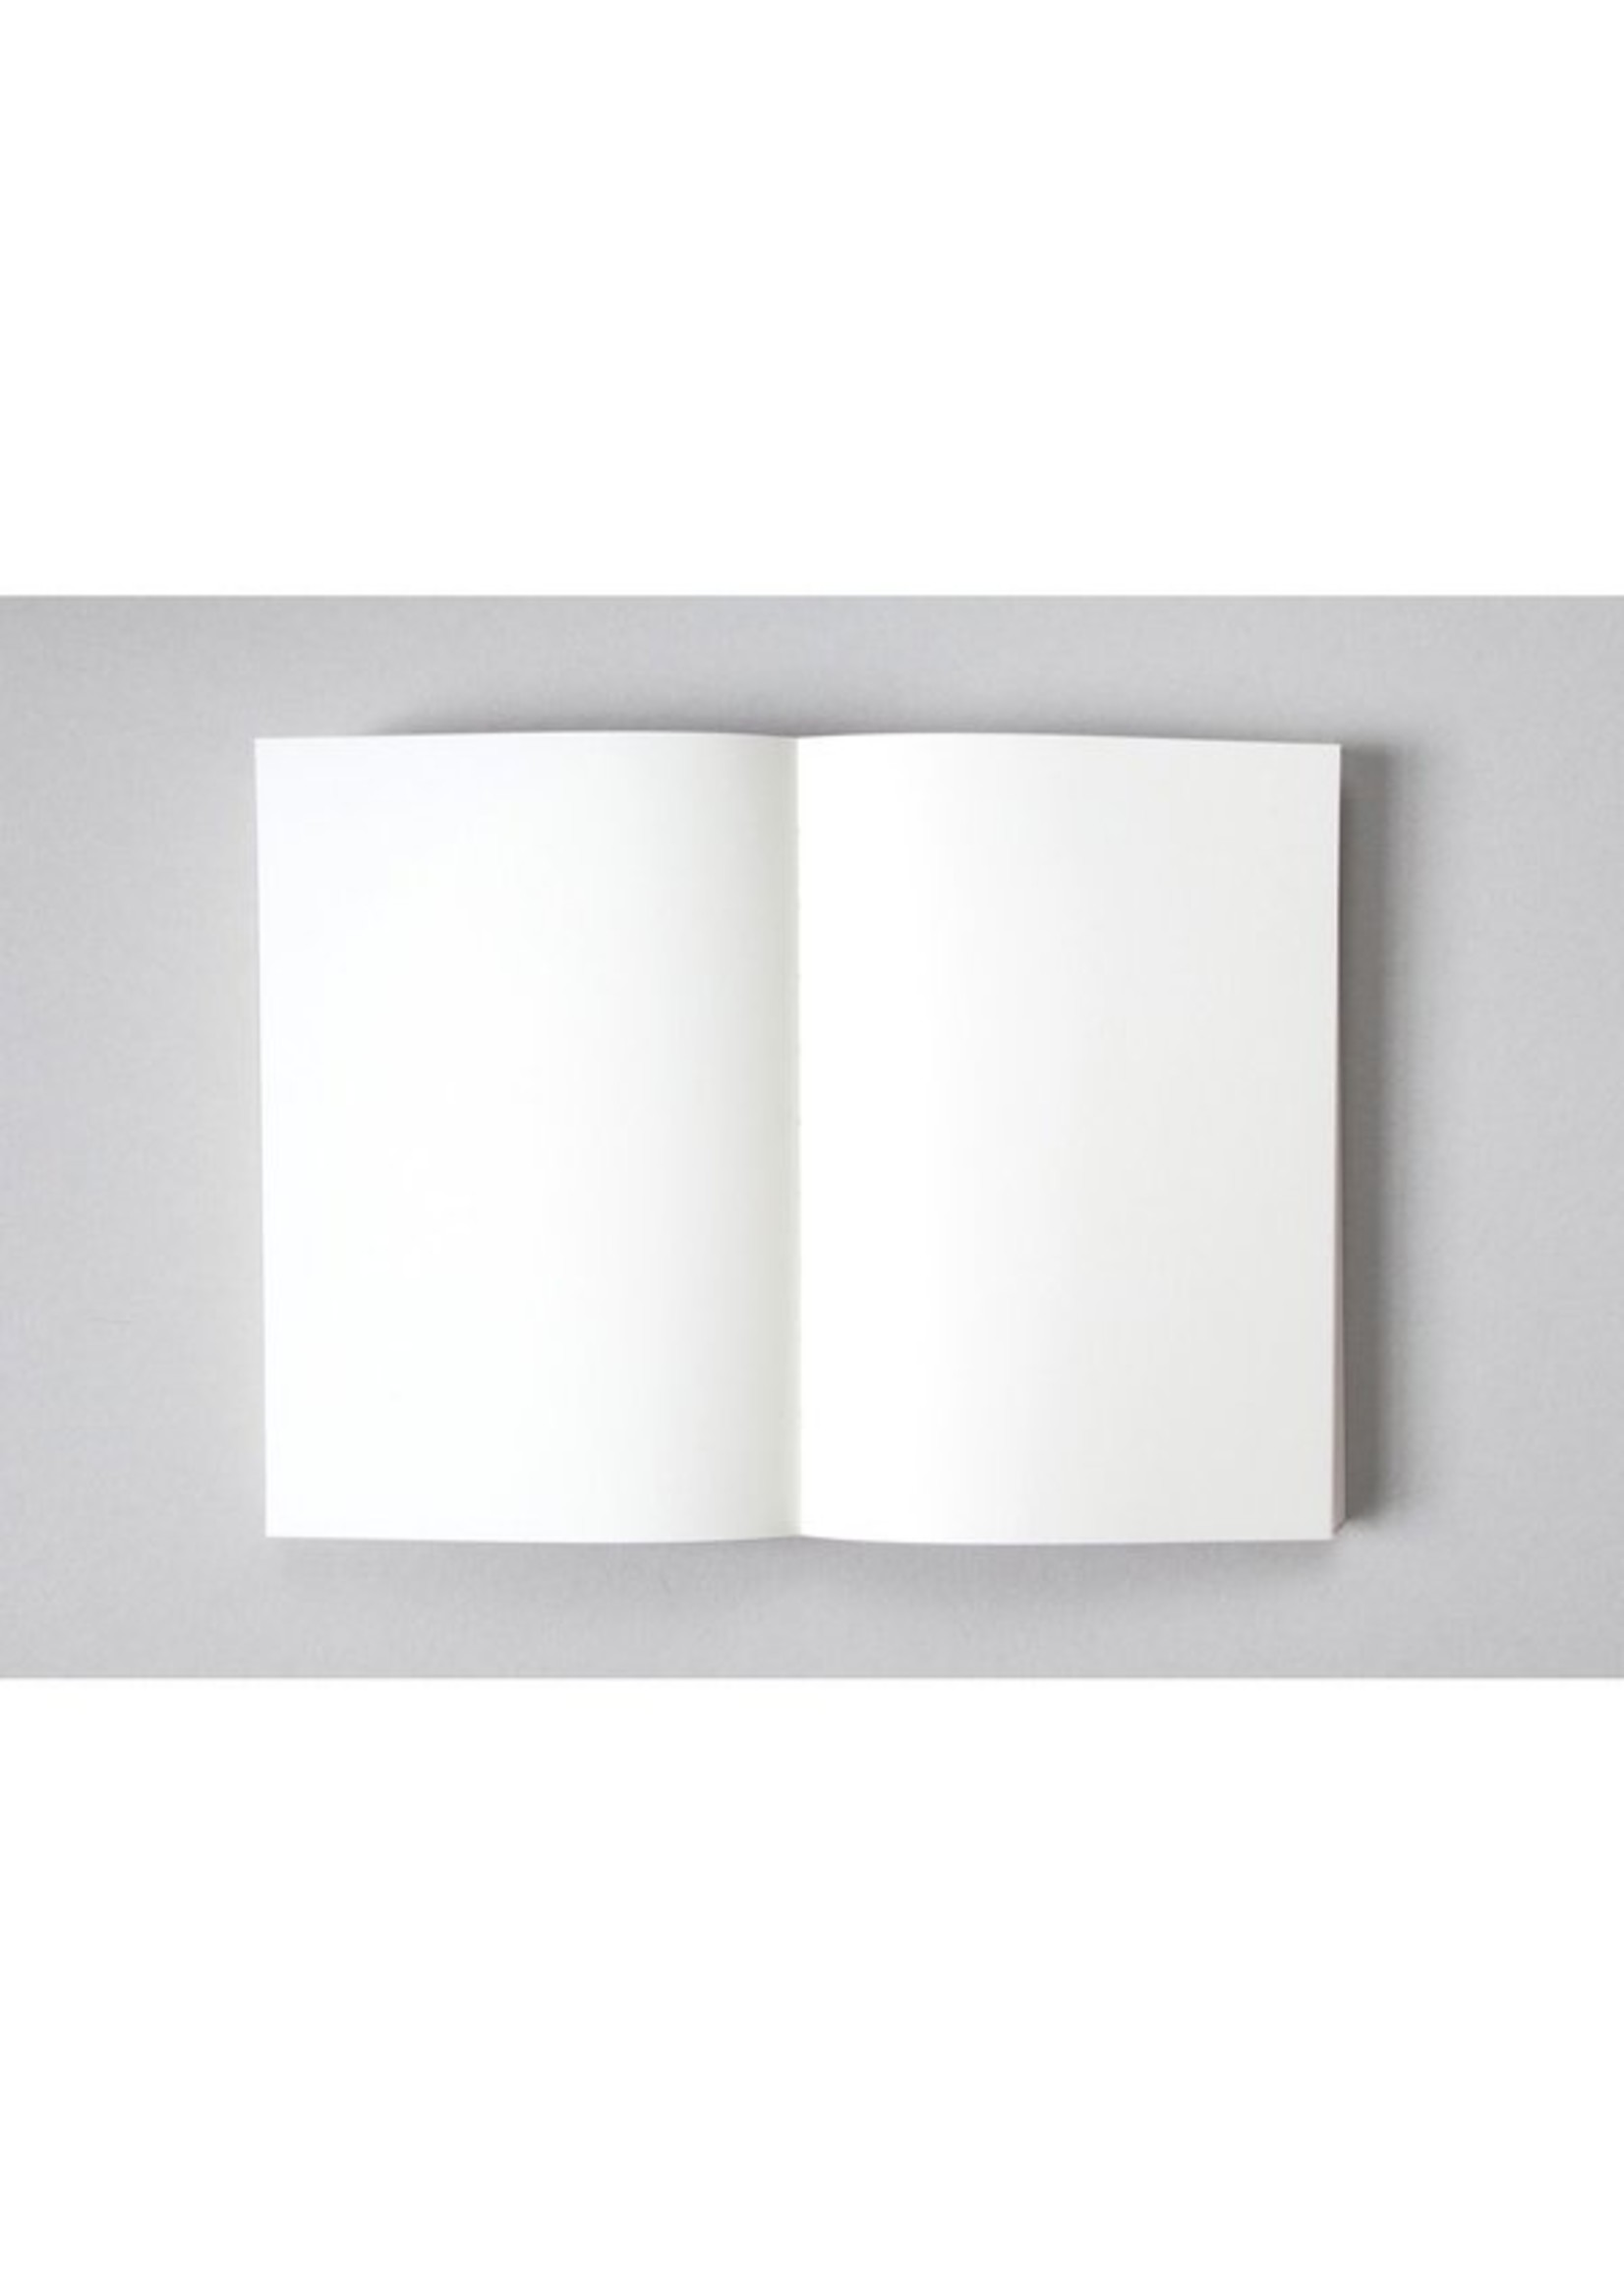 Ola Ola Medium Layflat Notebook - Sol Print in Black and White/Plain Pages